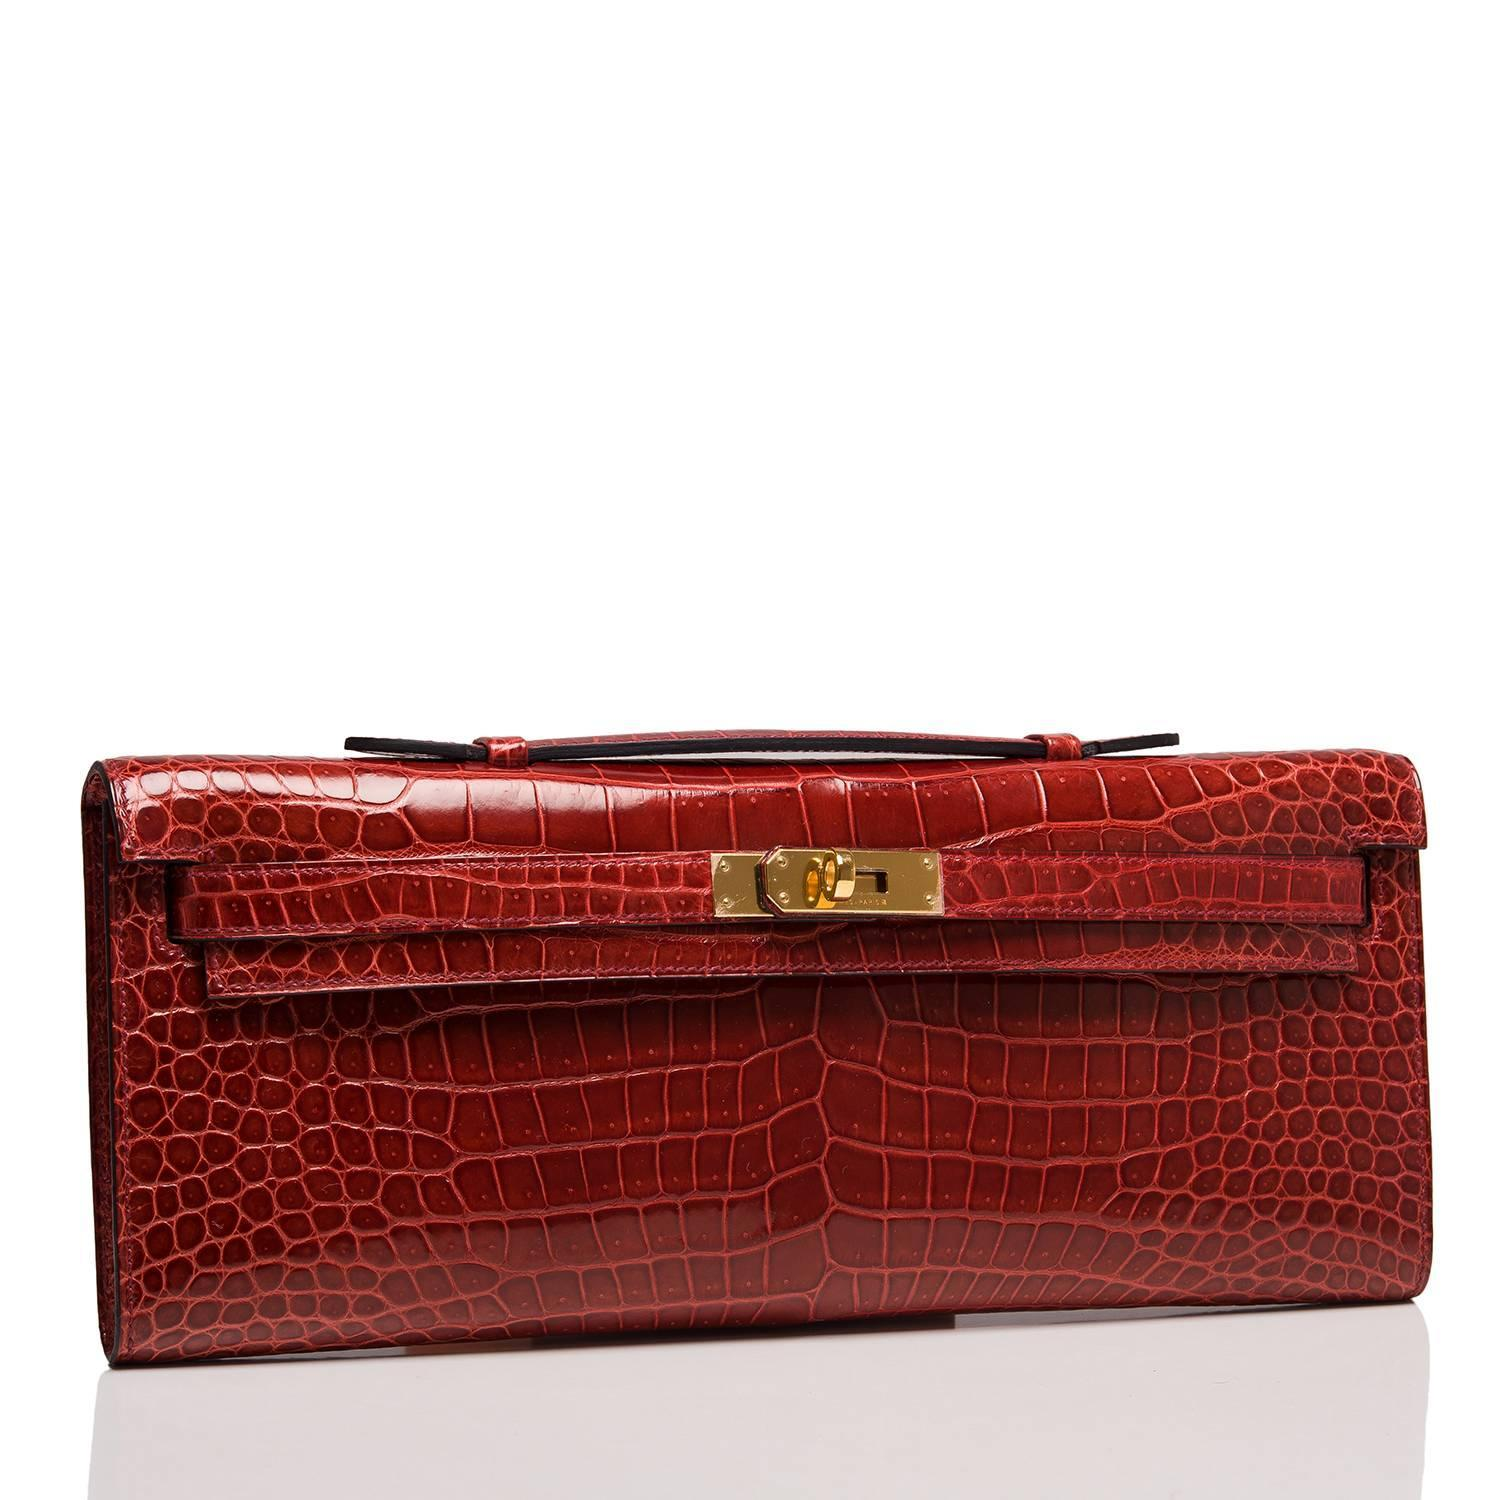 Hermes Rouge H Shiny Porosus Crocodile Kelly Cut For Sale at 1stdibs